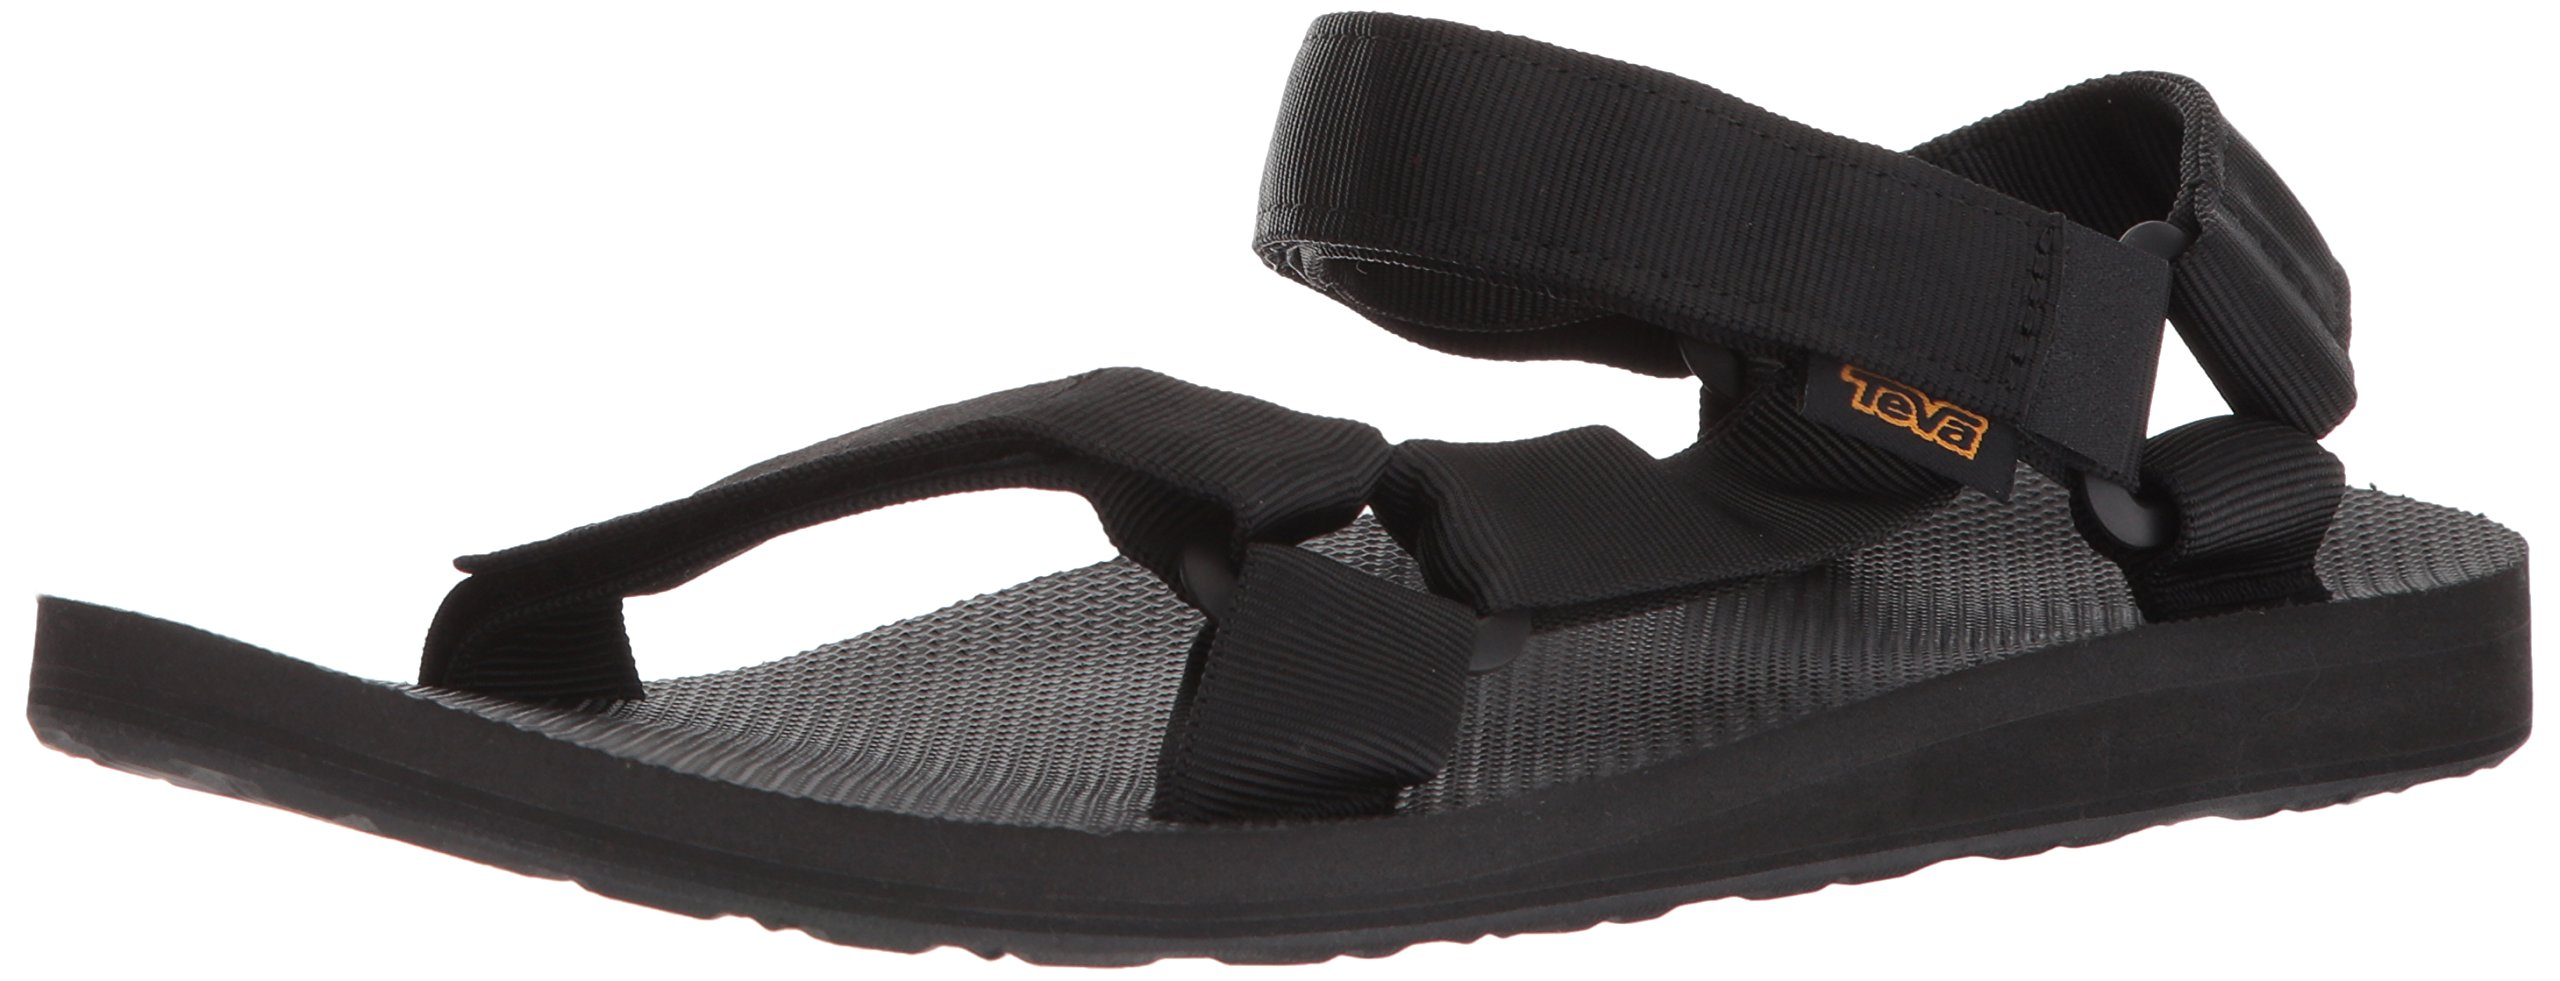 Teva Men's Original Universal Urban Sandal, Black, 10 M US